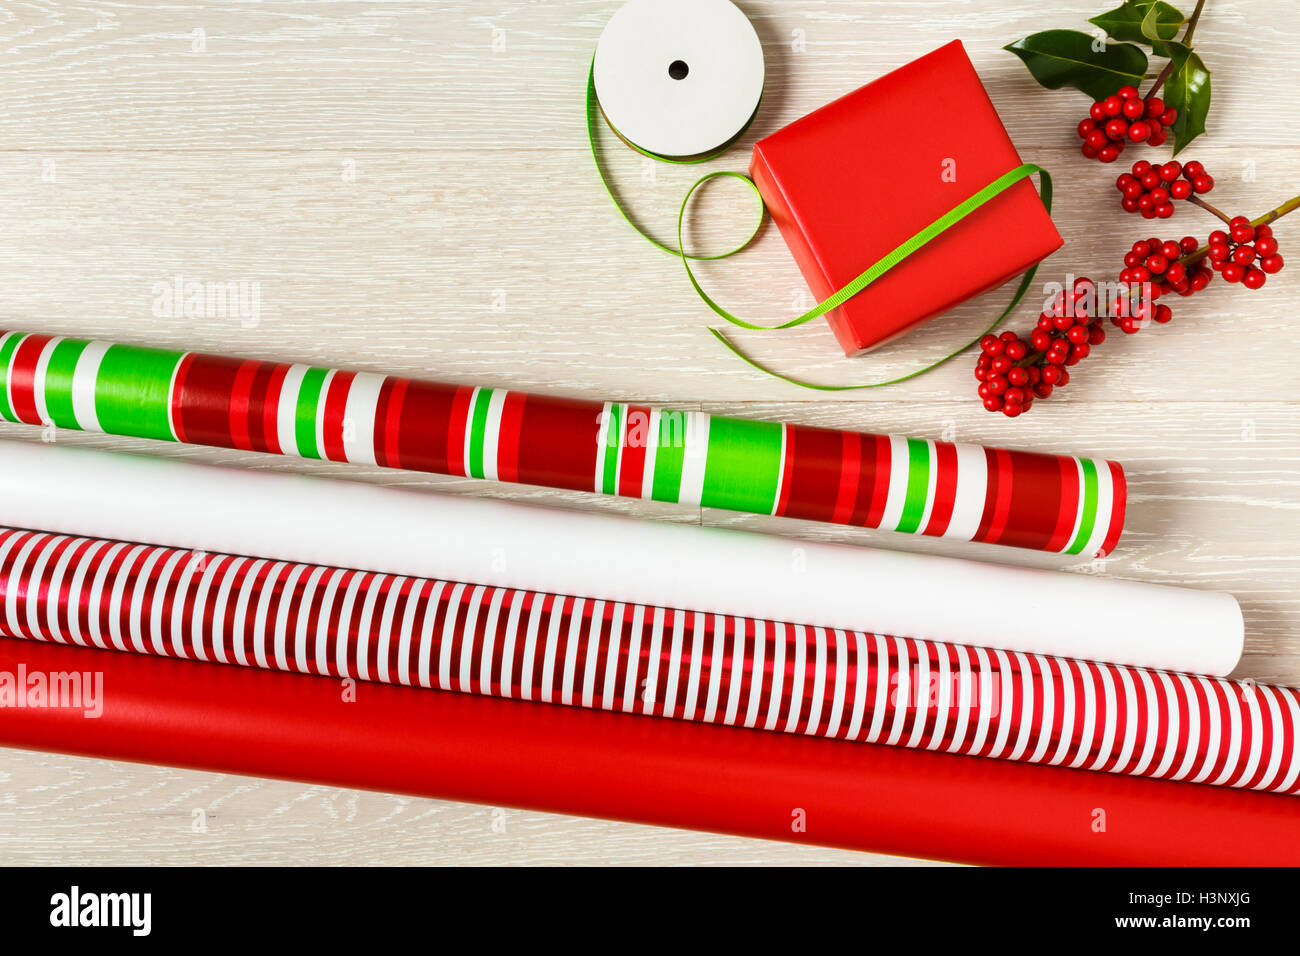 Red and green Christmas gift wrapping supplies wrapping paper, gift ...